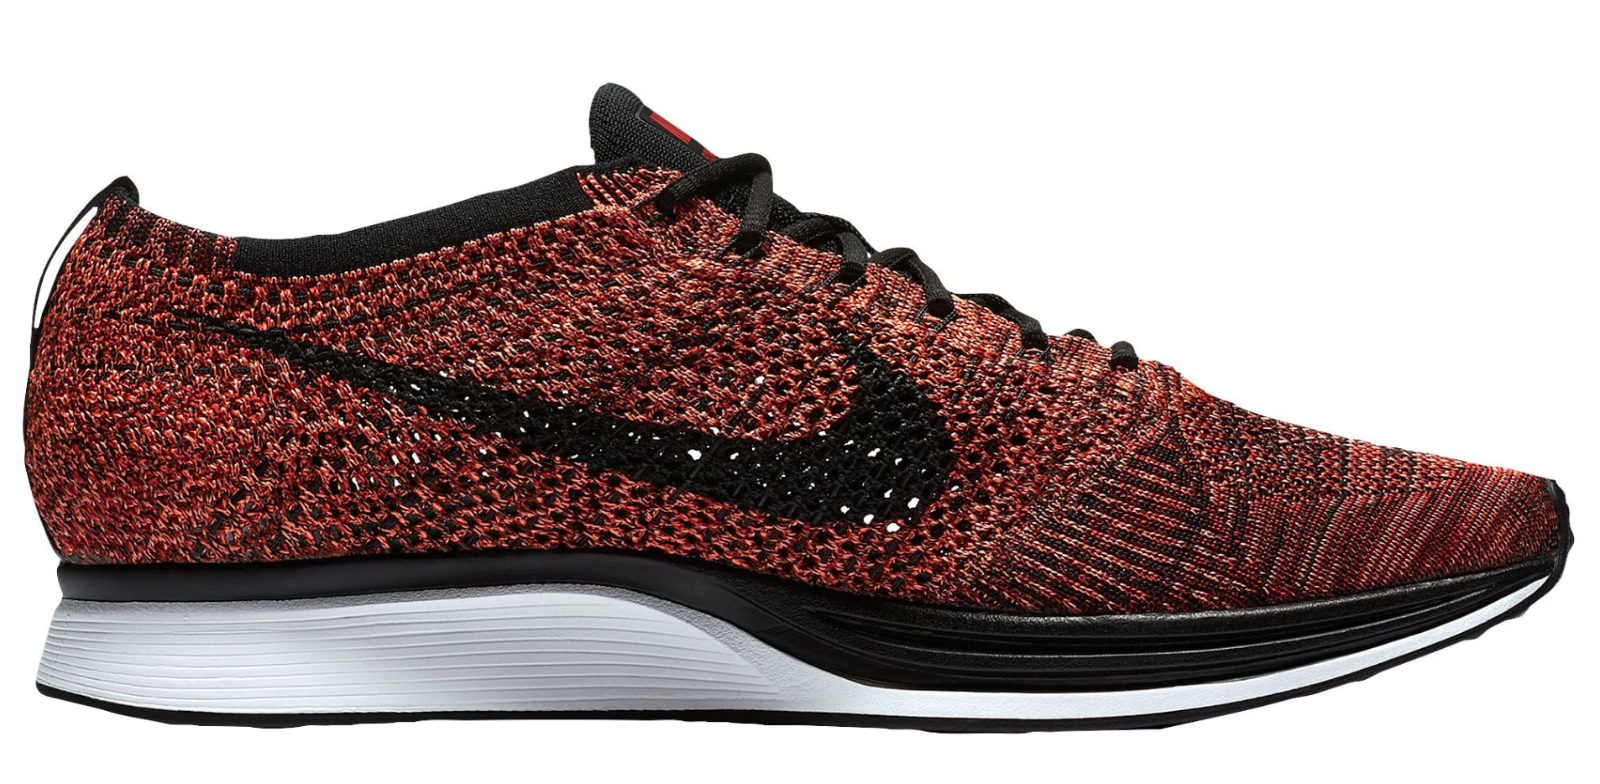 NEW homme Nike Flyknit Racer chaussures Taille: 13 Color: University rouge